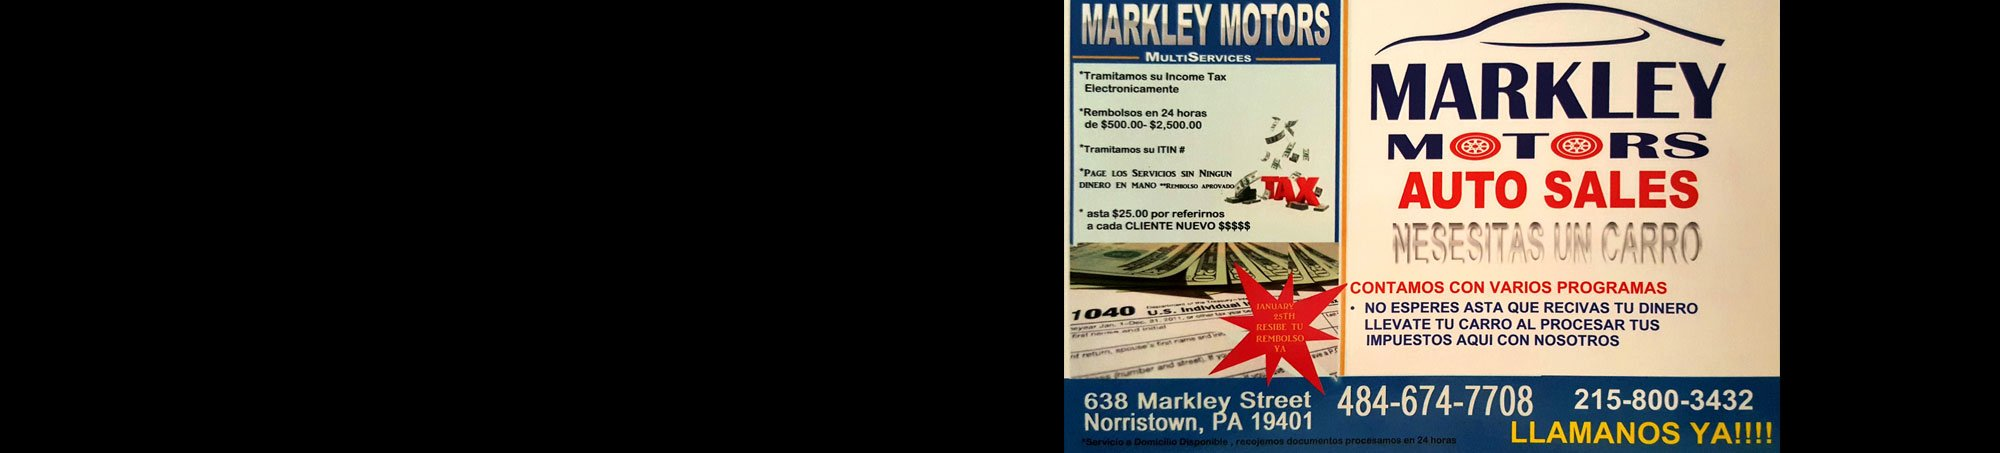 Markley motors used cars norristown pa dealer for Markley motors service coupons